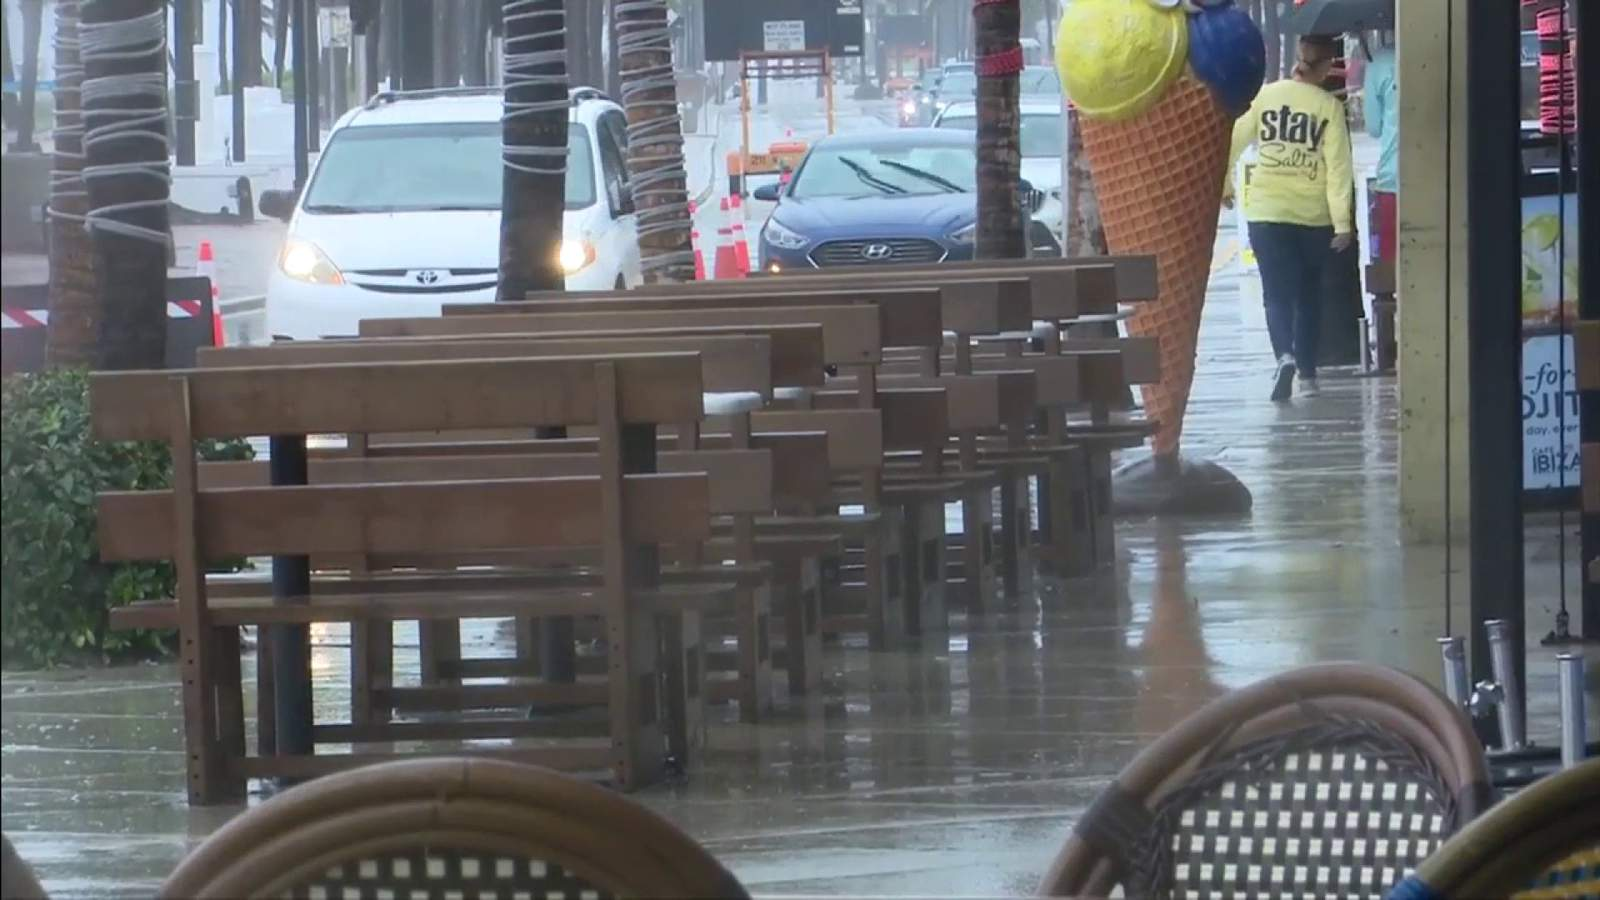 Not much activity on Memorial Day weekend amid pandemic, soggy streets